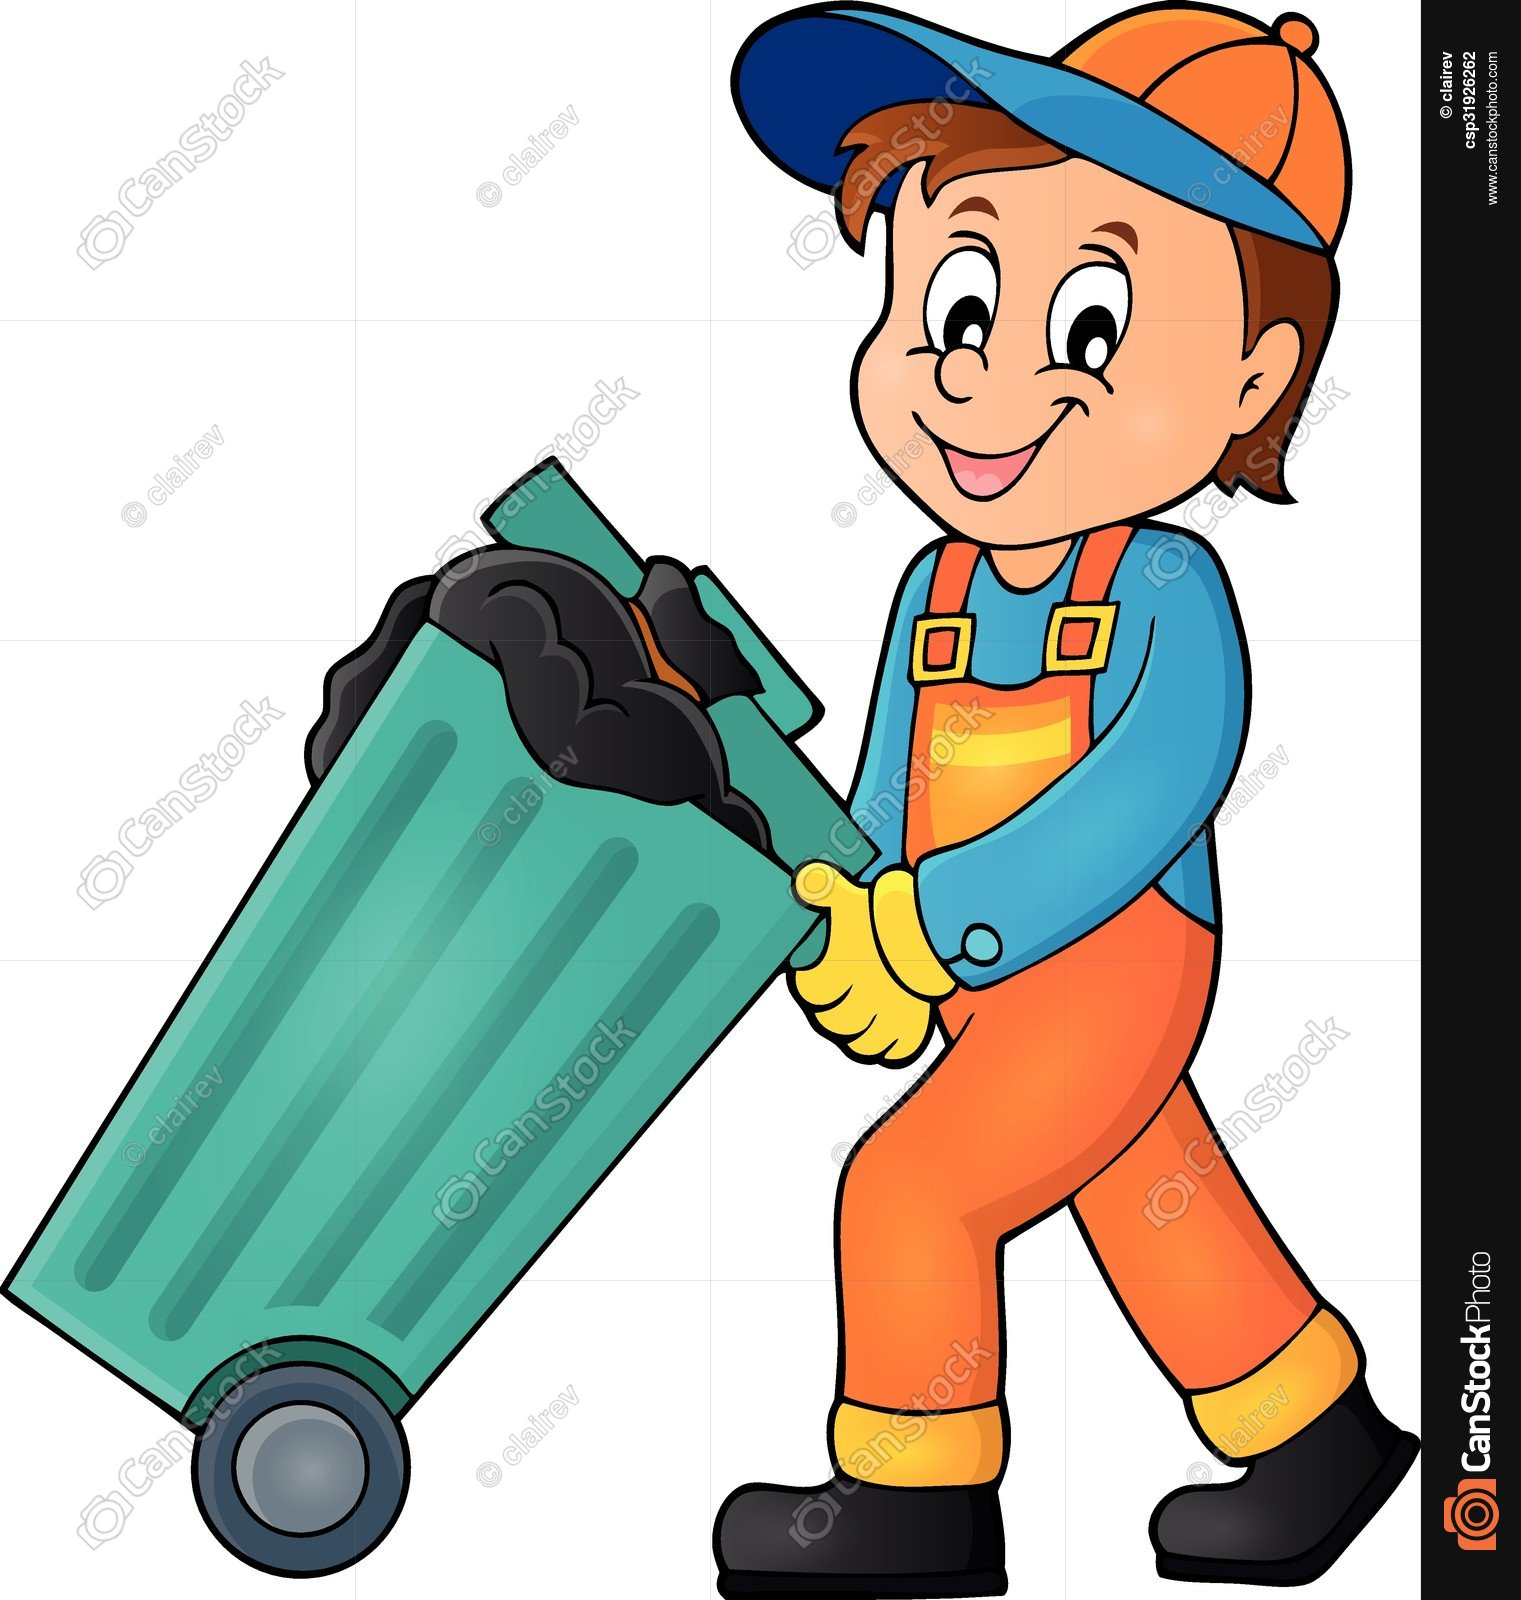 Garbage man clipart 6 » Clipart Station.